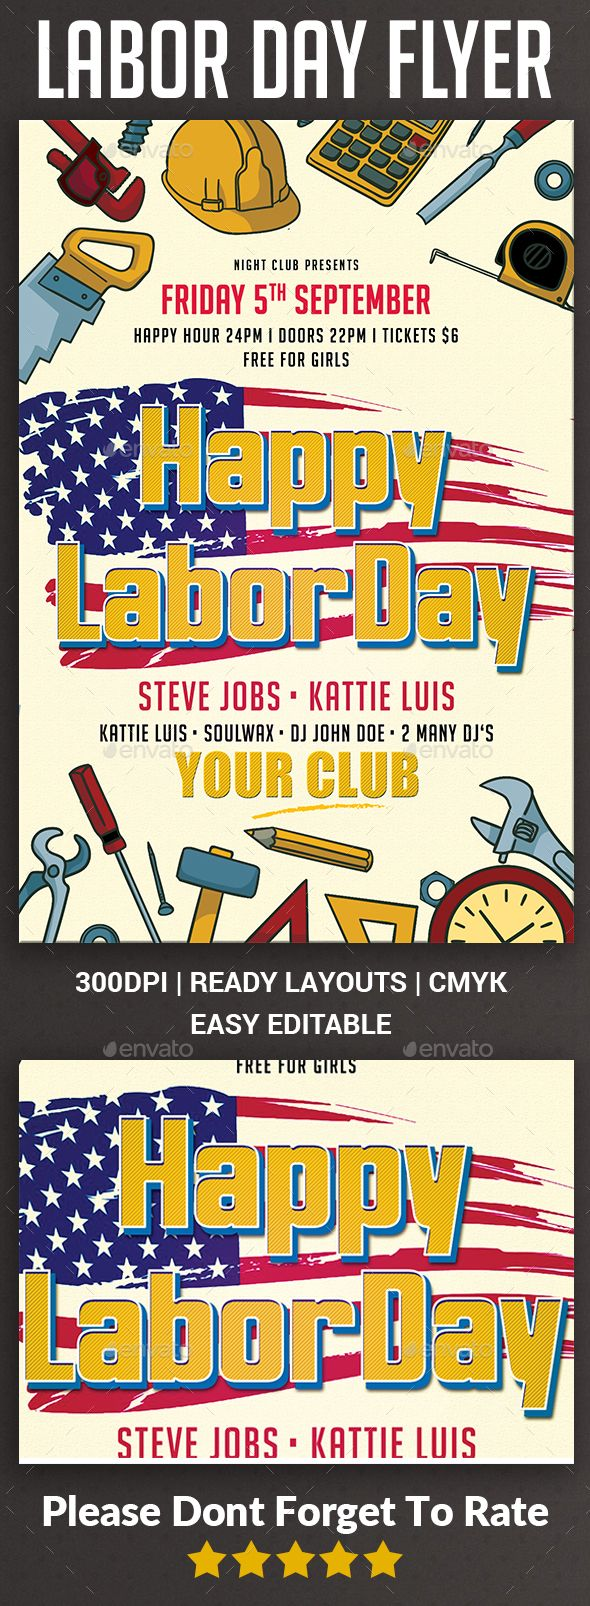 Labor Day Flyer | Labour, Photoshop and Font logo